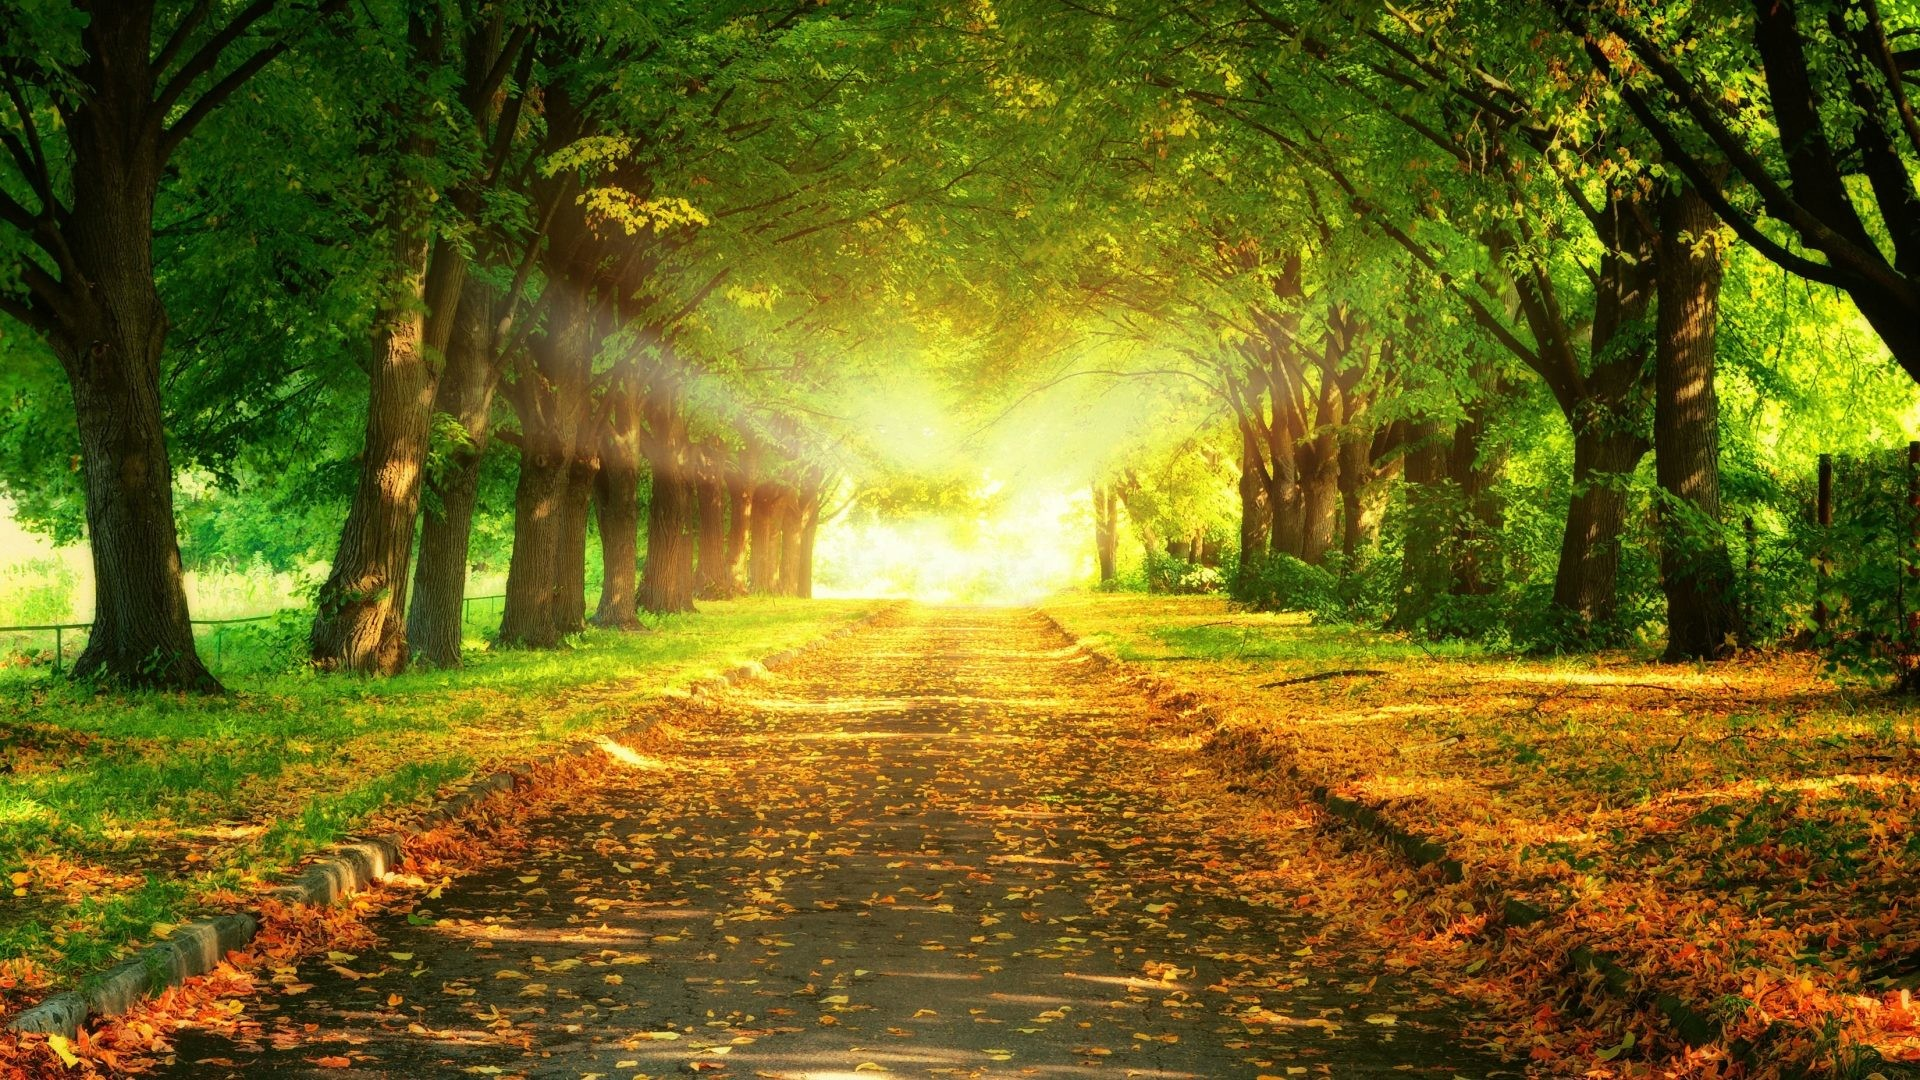 Res: 1920x1080, Wallpaper Forest Scene High Quality Full Hd Path Tag Landscape Fall Tree  Trail Autumn Of Androids